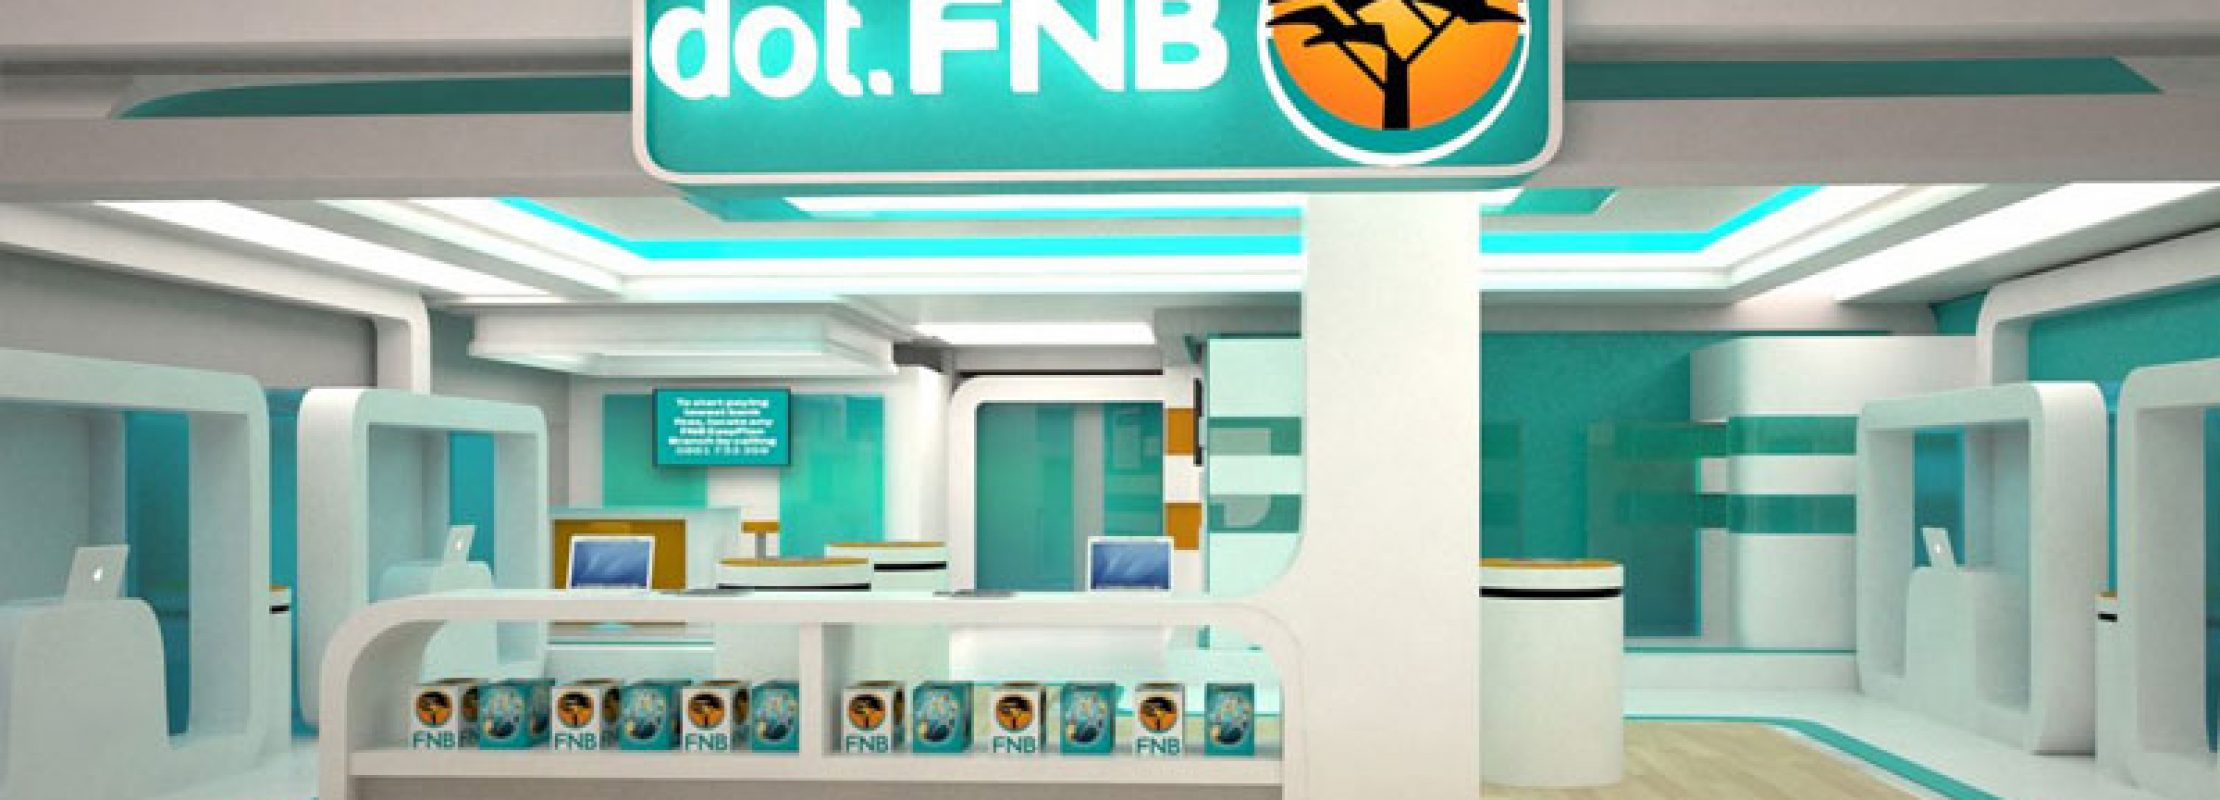 FNB life cover now available on digital platforms - Tech IT Out